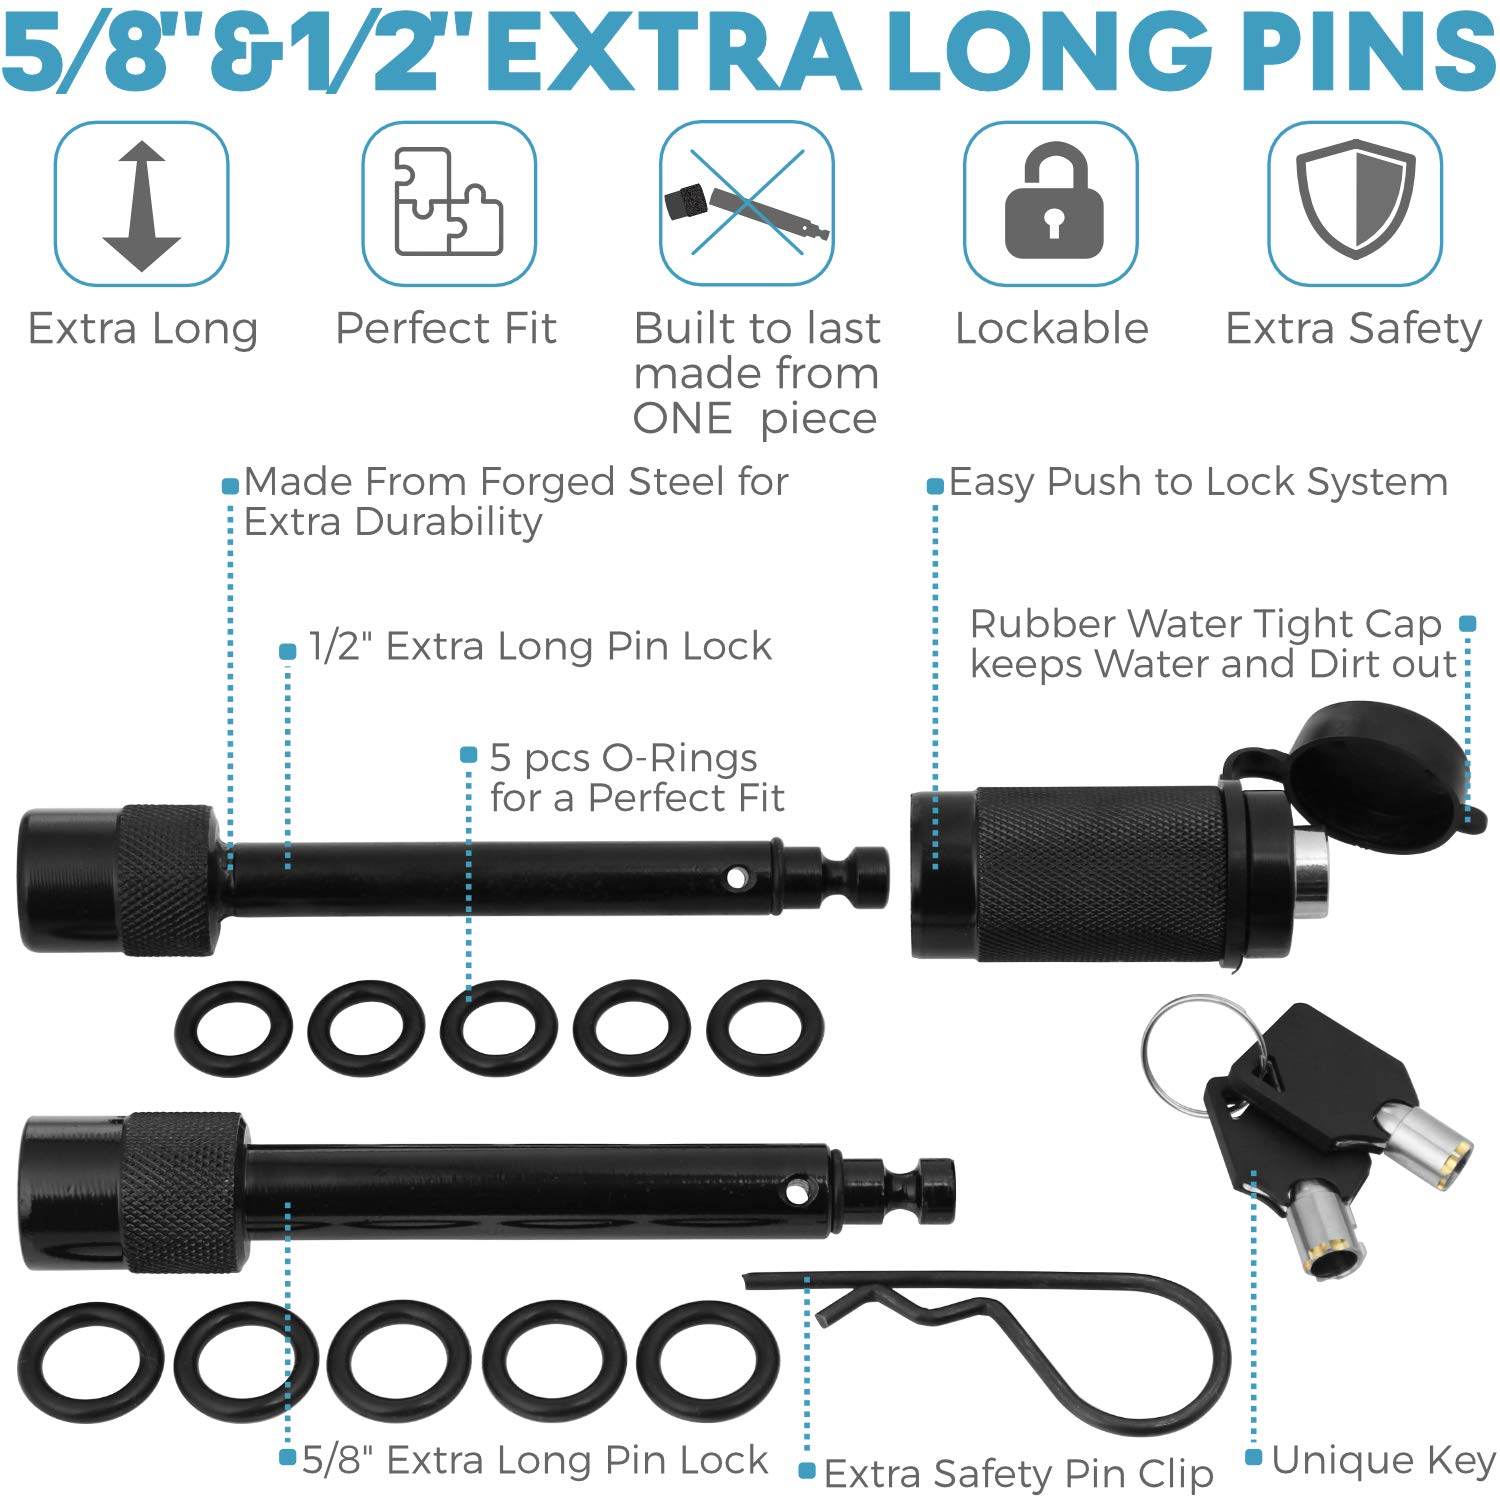 """5//8 and 1//2 Extra Long Black Pins with One Locking System Motormic Trailer Hitch Lock Pin Set 2/"""" and 2.5 inch Tow receivers 1.25/"""" 10 Anti Rattle O-Rings 1 Safety Clip Class I,II,III,IV,V"""